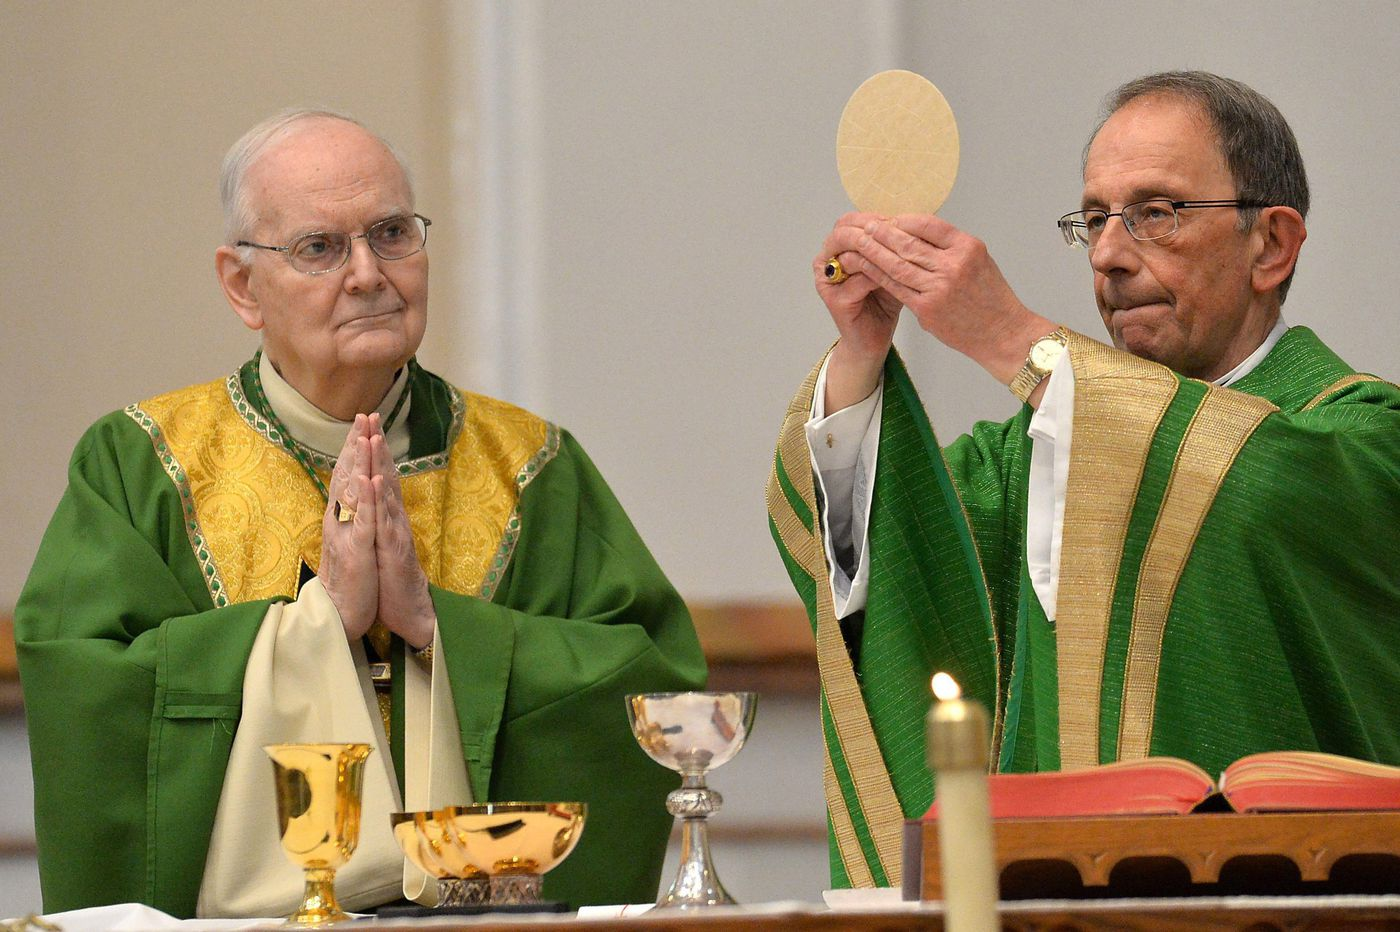 Retired Erie bishop is one of the petitioners challenging clergy sex-abuse report